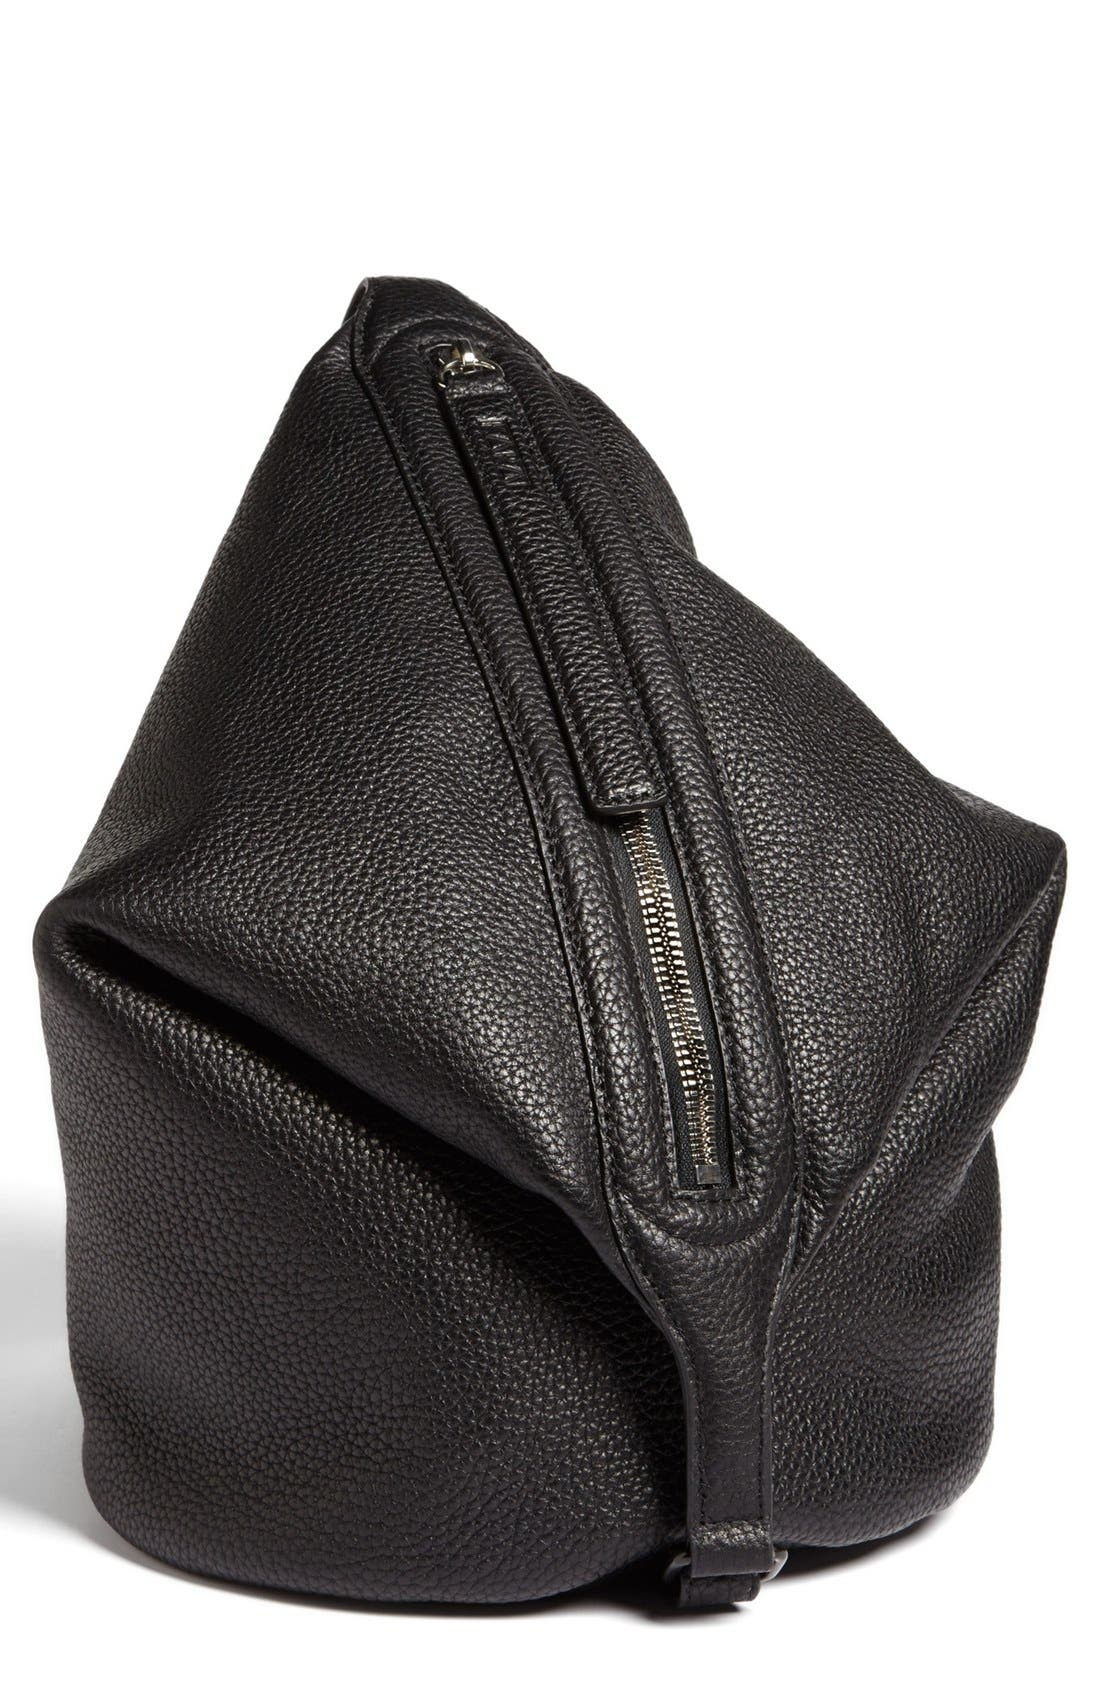 Alternate Image 2  - Kara 'Dry - Small' Convertible Pebbled Leather Bucket Bag, Small